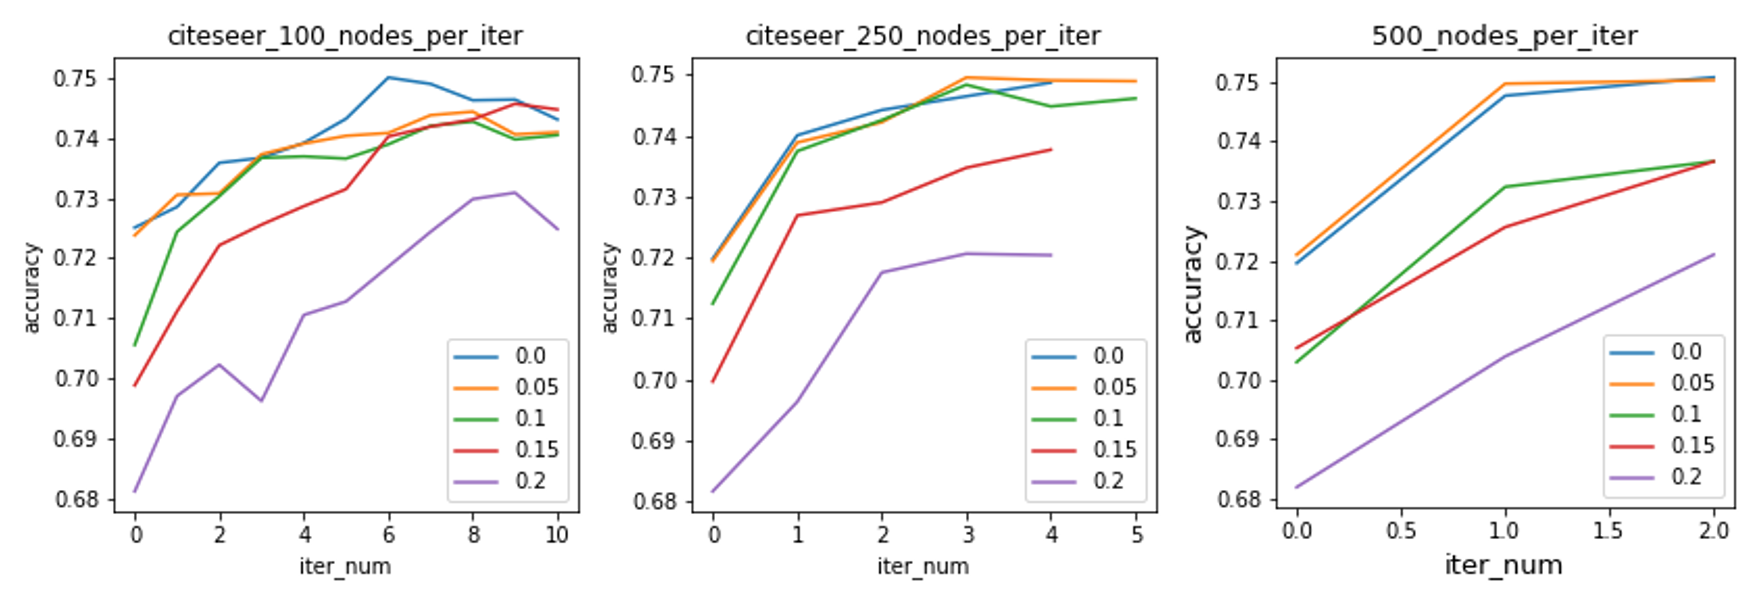 Node classification accuracy using different hyper-parameters. Generally, adding less nodes per iteration leads to better accuracy, although it is more time-demanding.